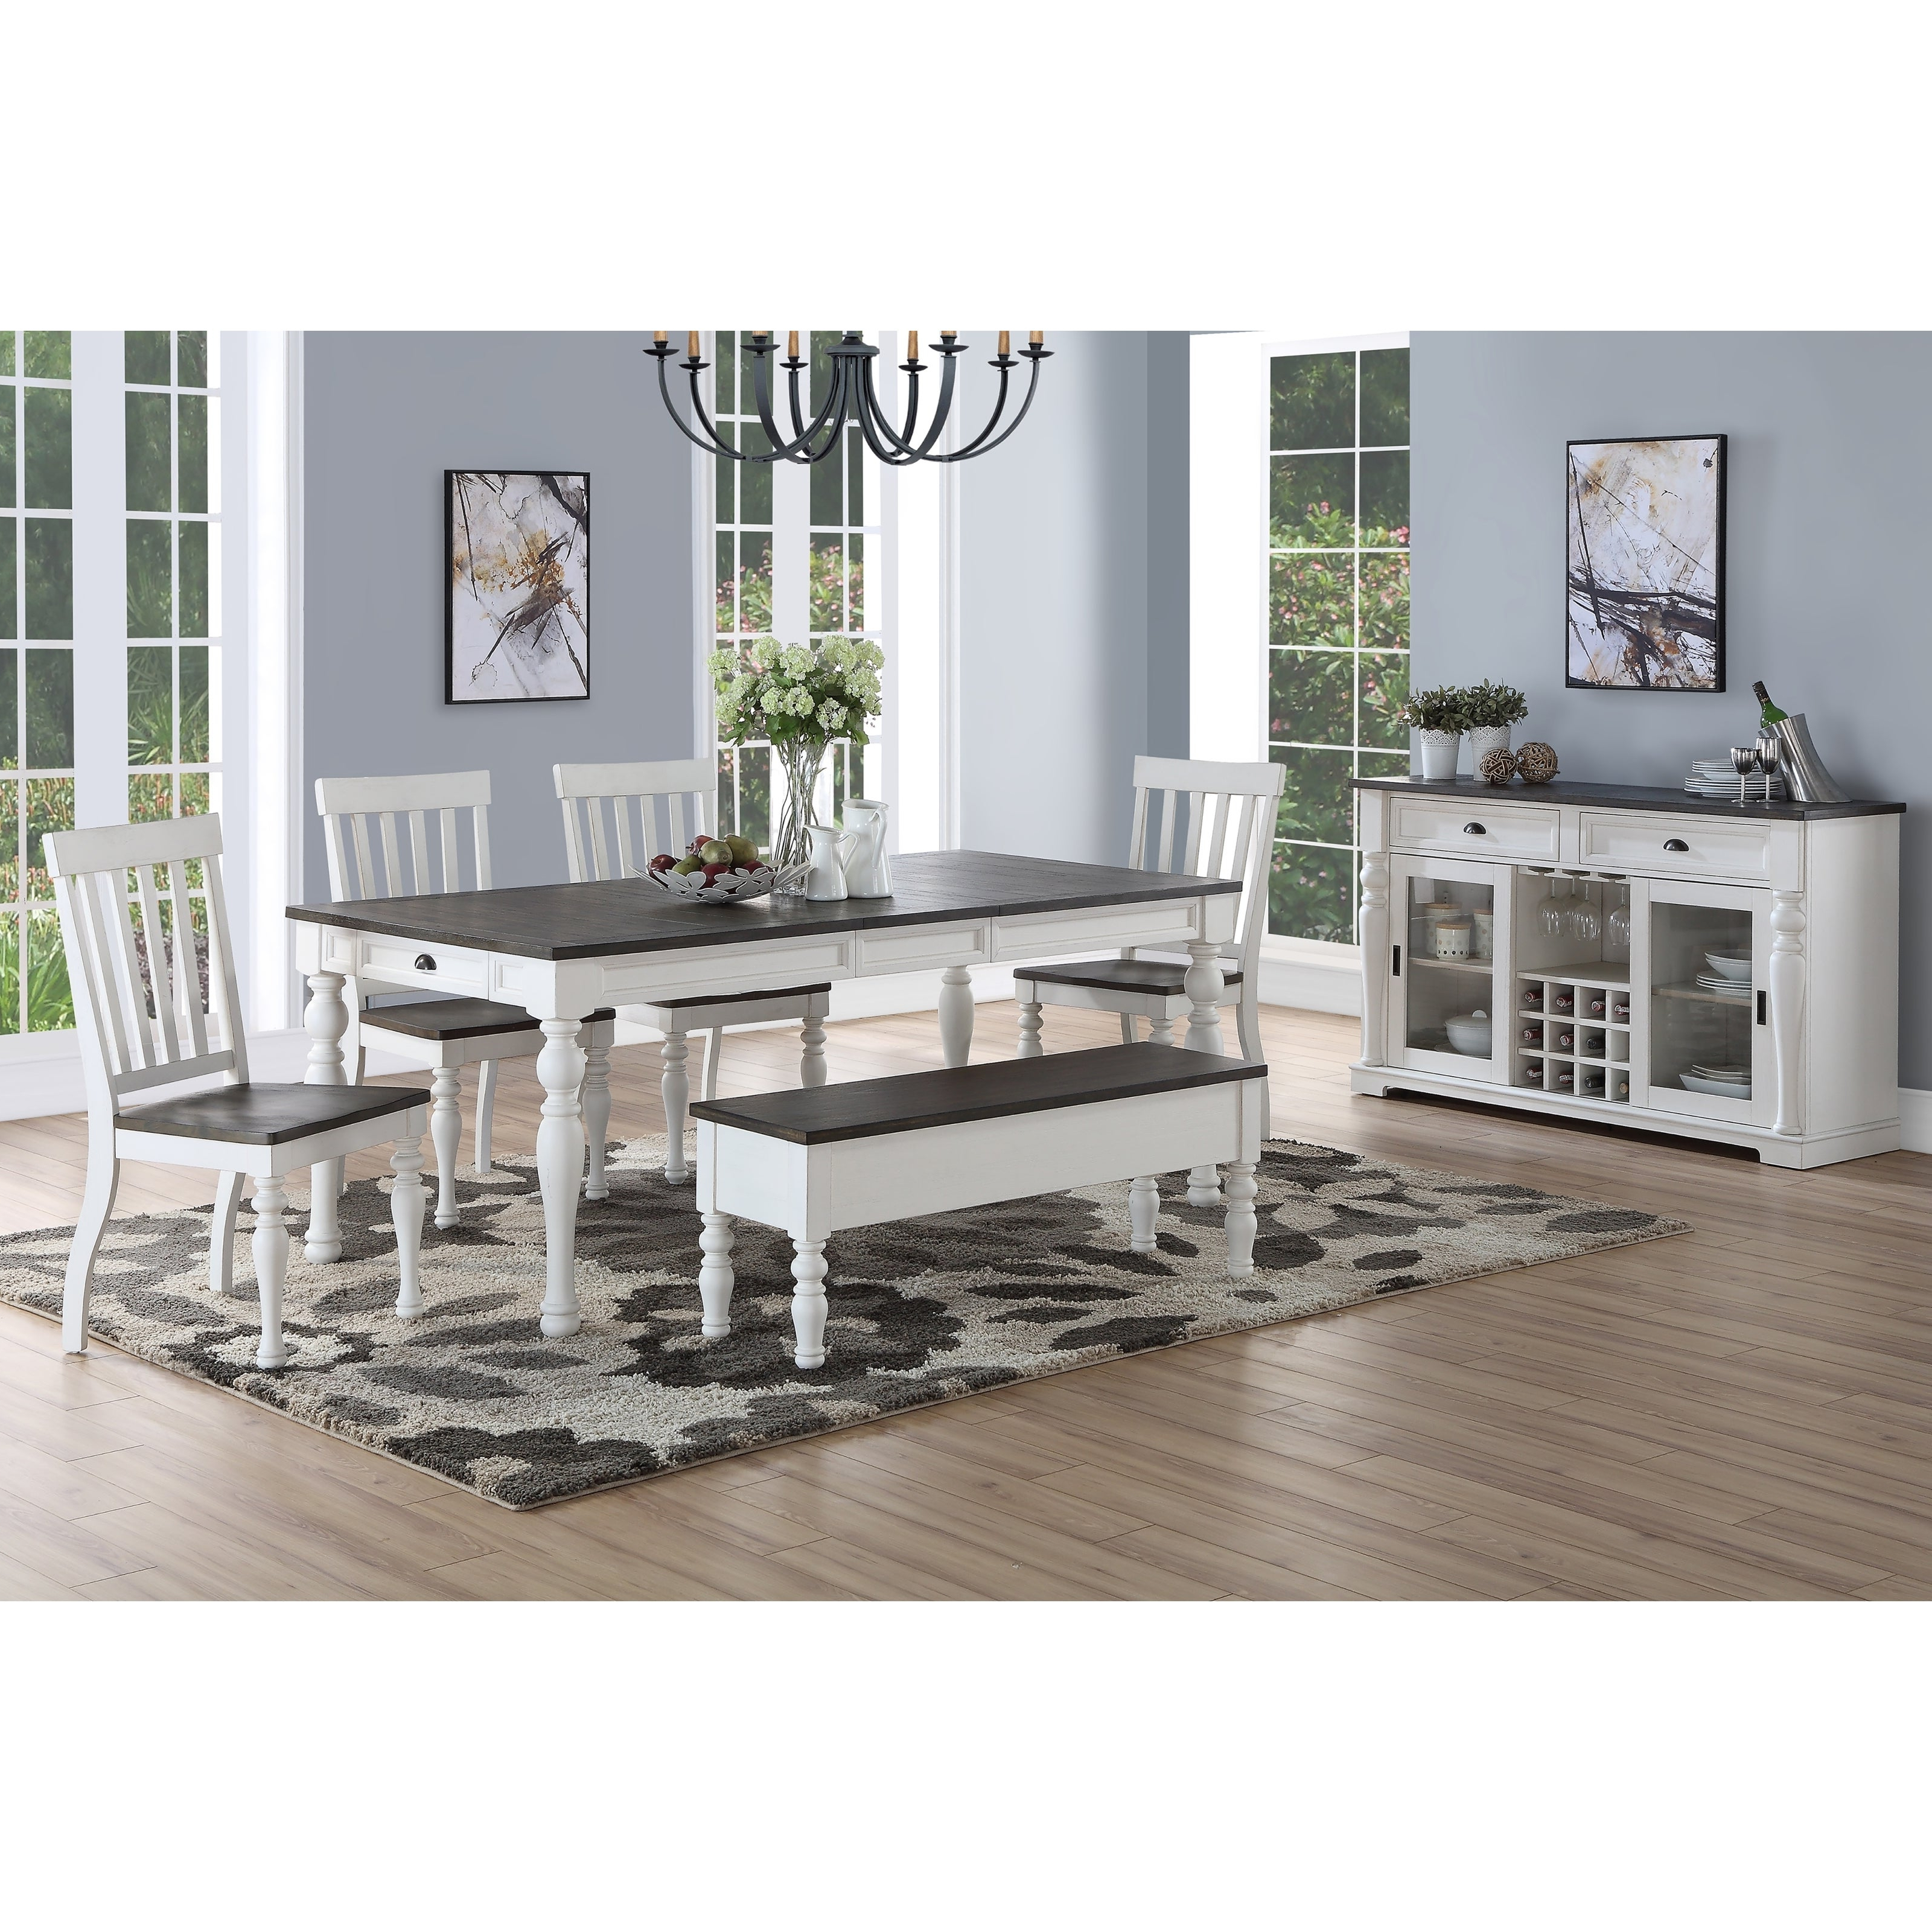 Buy 6 Piece Sets Kitchen & Dining Room Sets Online At Overstock Inside Best And Newest Osterman 6 Piece Extendable Dining Sets (Set Of 6) (Gallery 4 of 20)